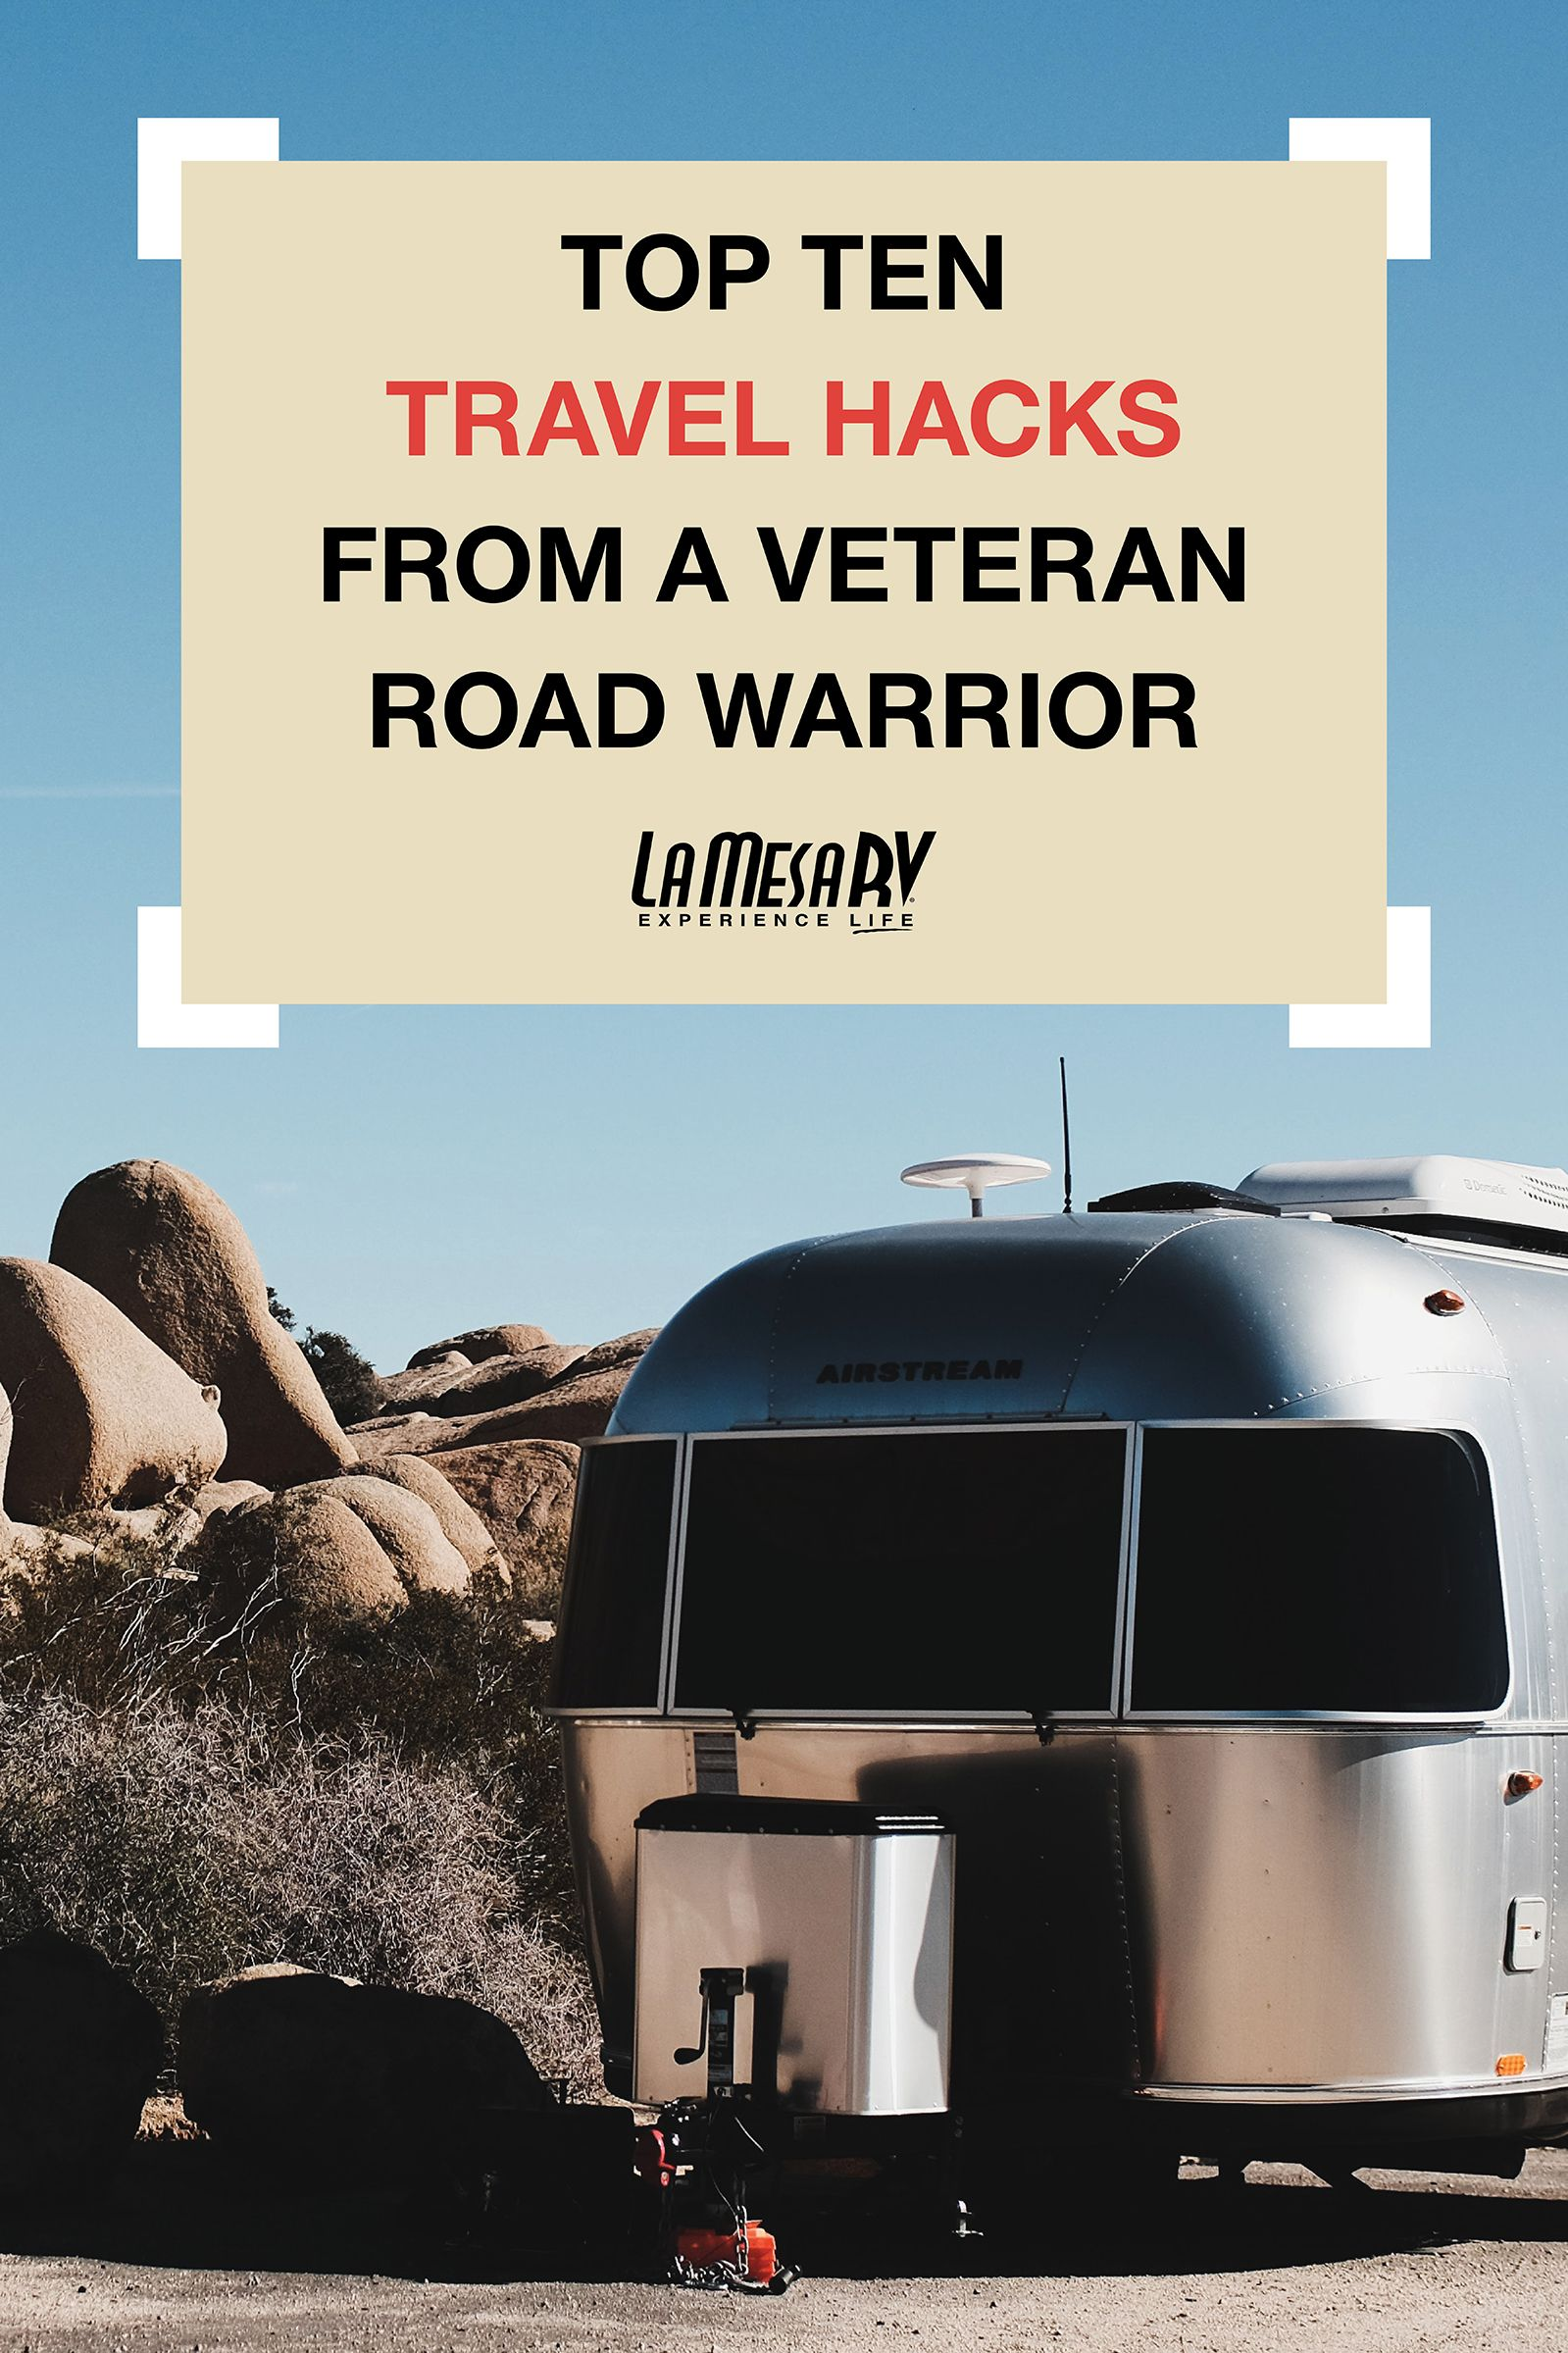 Every Mile Spent Rving Is One For The Books There Is Endless Knowledge To Be Gained While On The Road From Bu Living On The Road Army Corps Of Engineers Rver